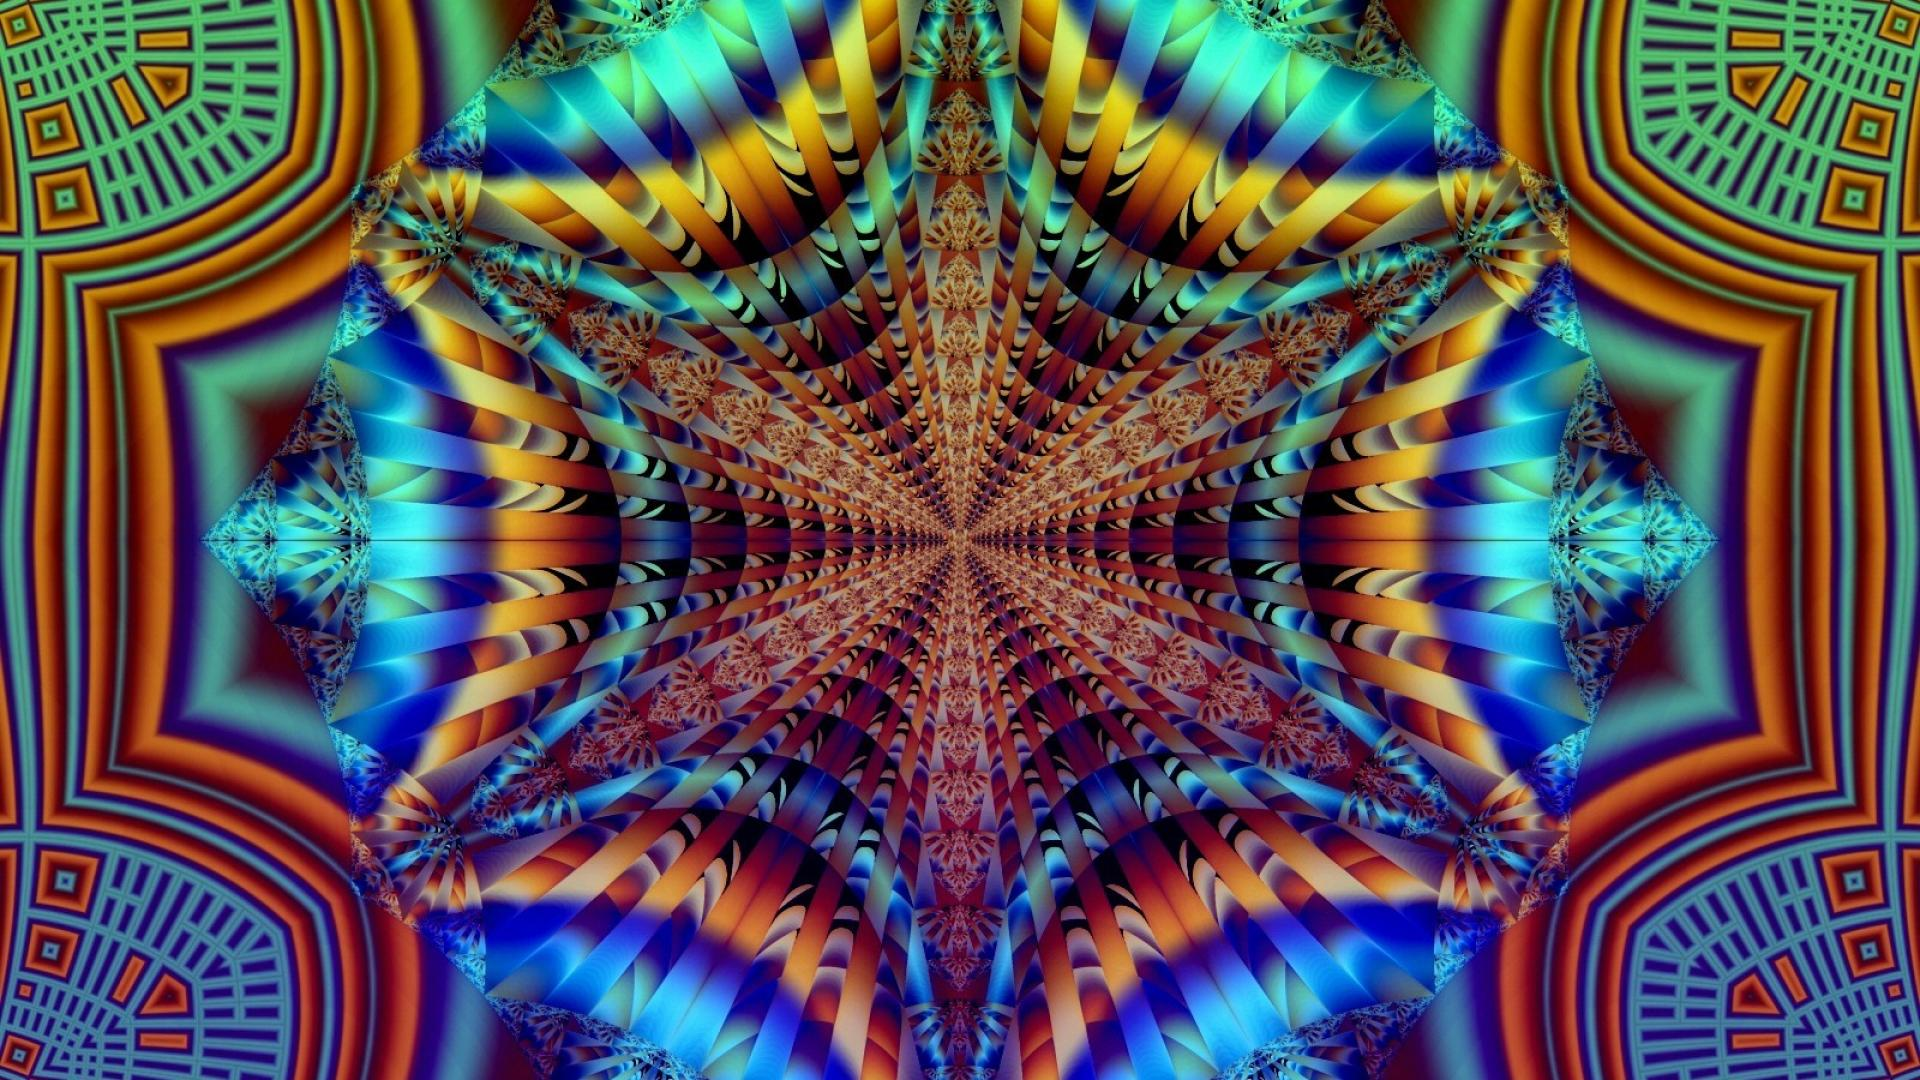 psychedelic wallpaper 1920x1080